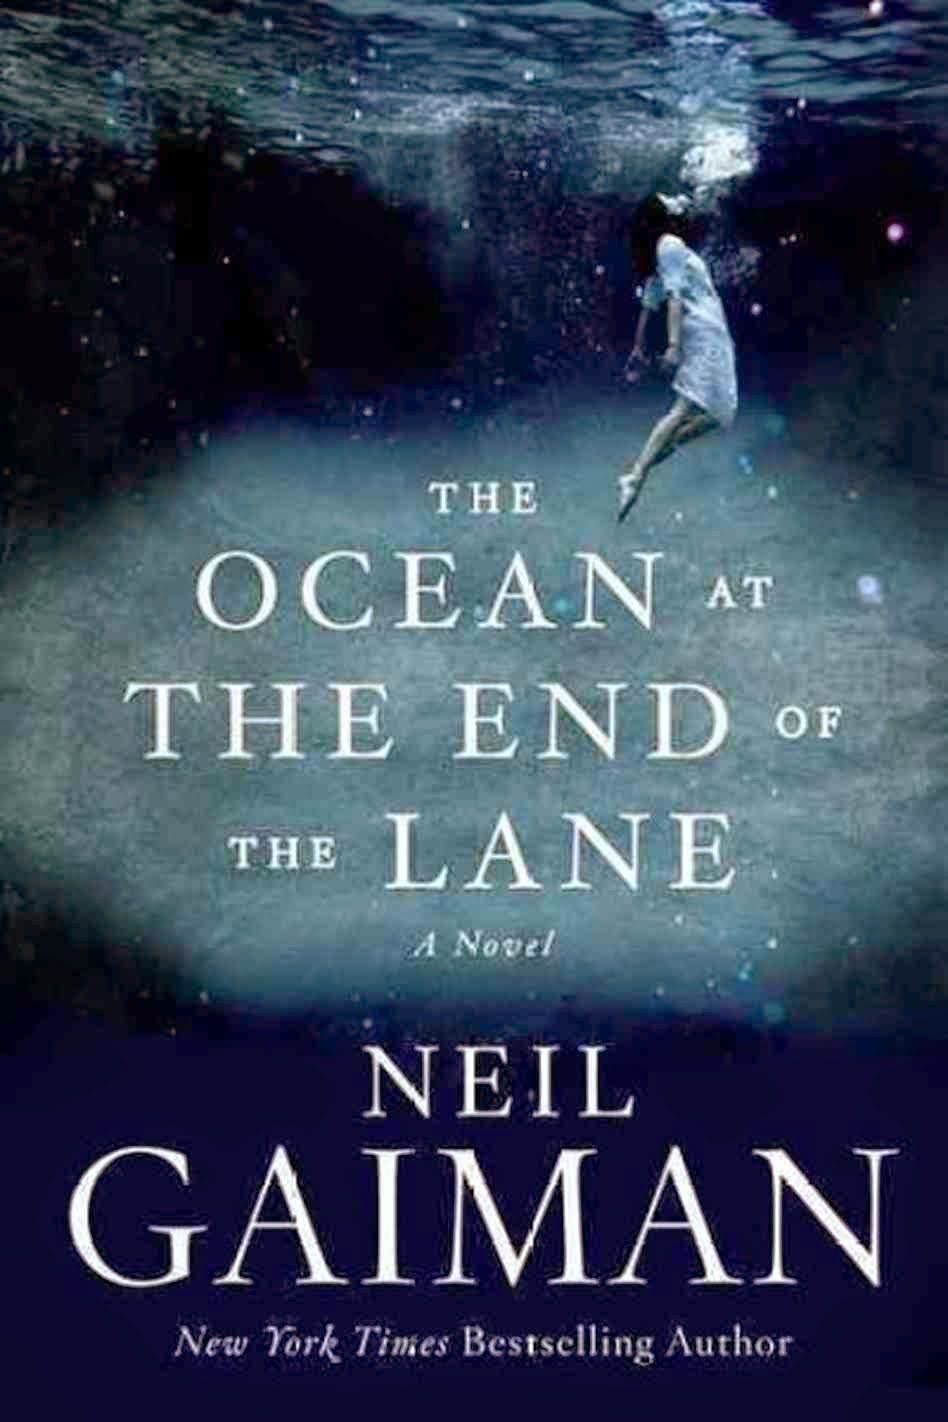 http://media.npr.org/assets/bakertaylor/covers/t/the-ocean-at-the-end-of-the-lane/9780062255655_custom-edf574a766e8d0912ecde8211555ca96c266ae1d-s6-c30.jpg